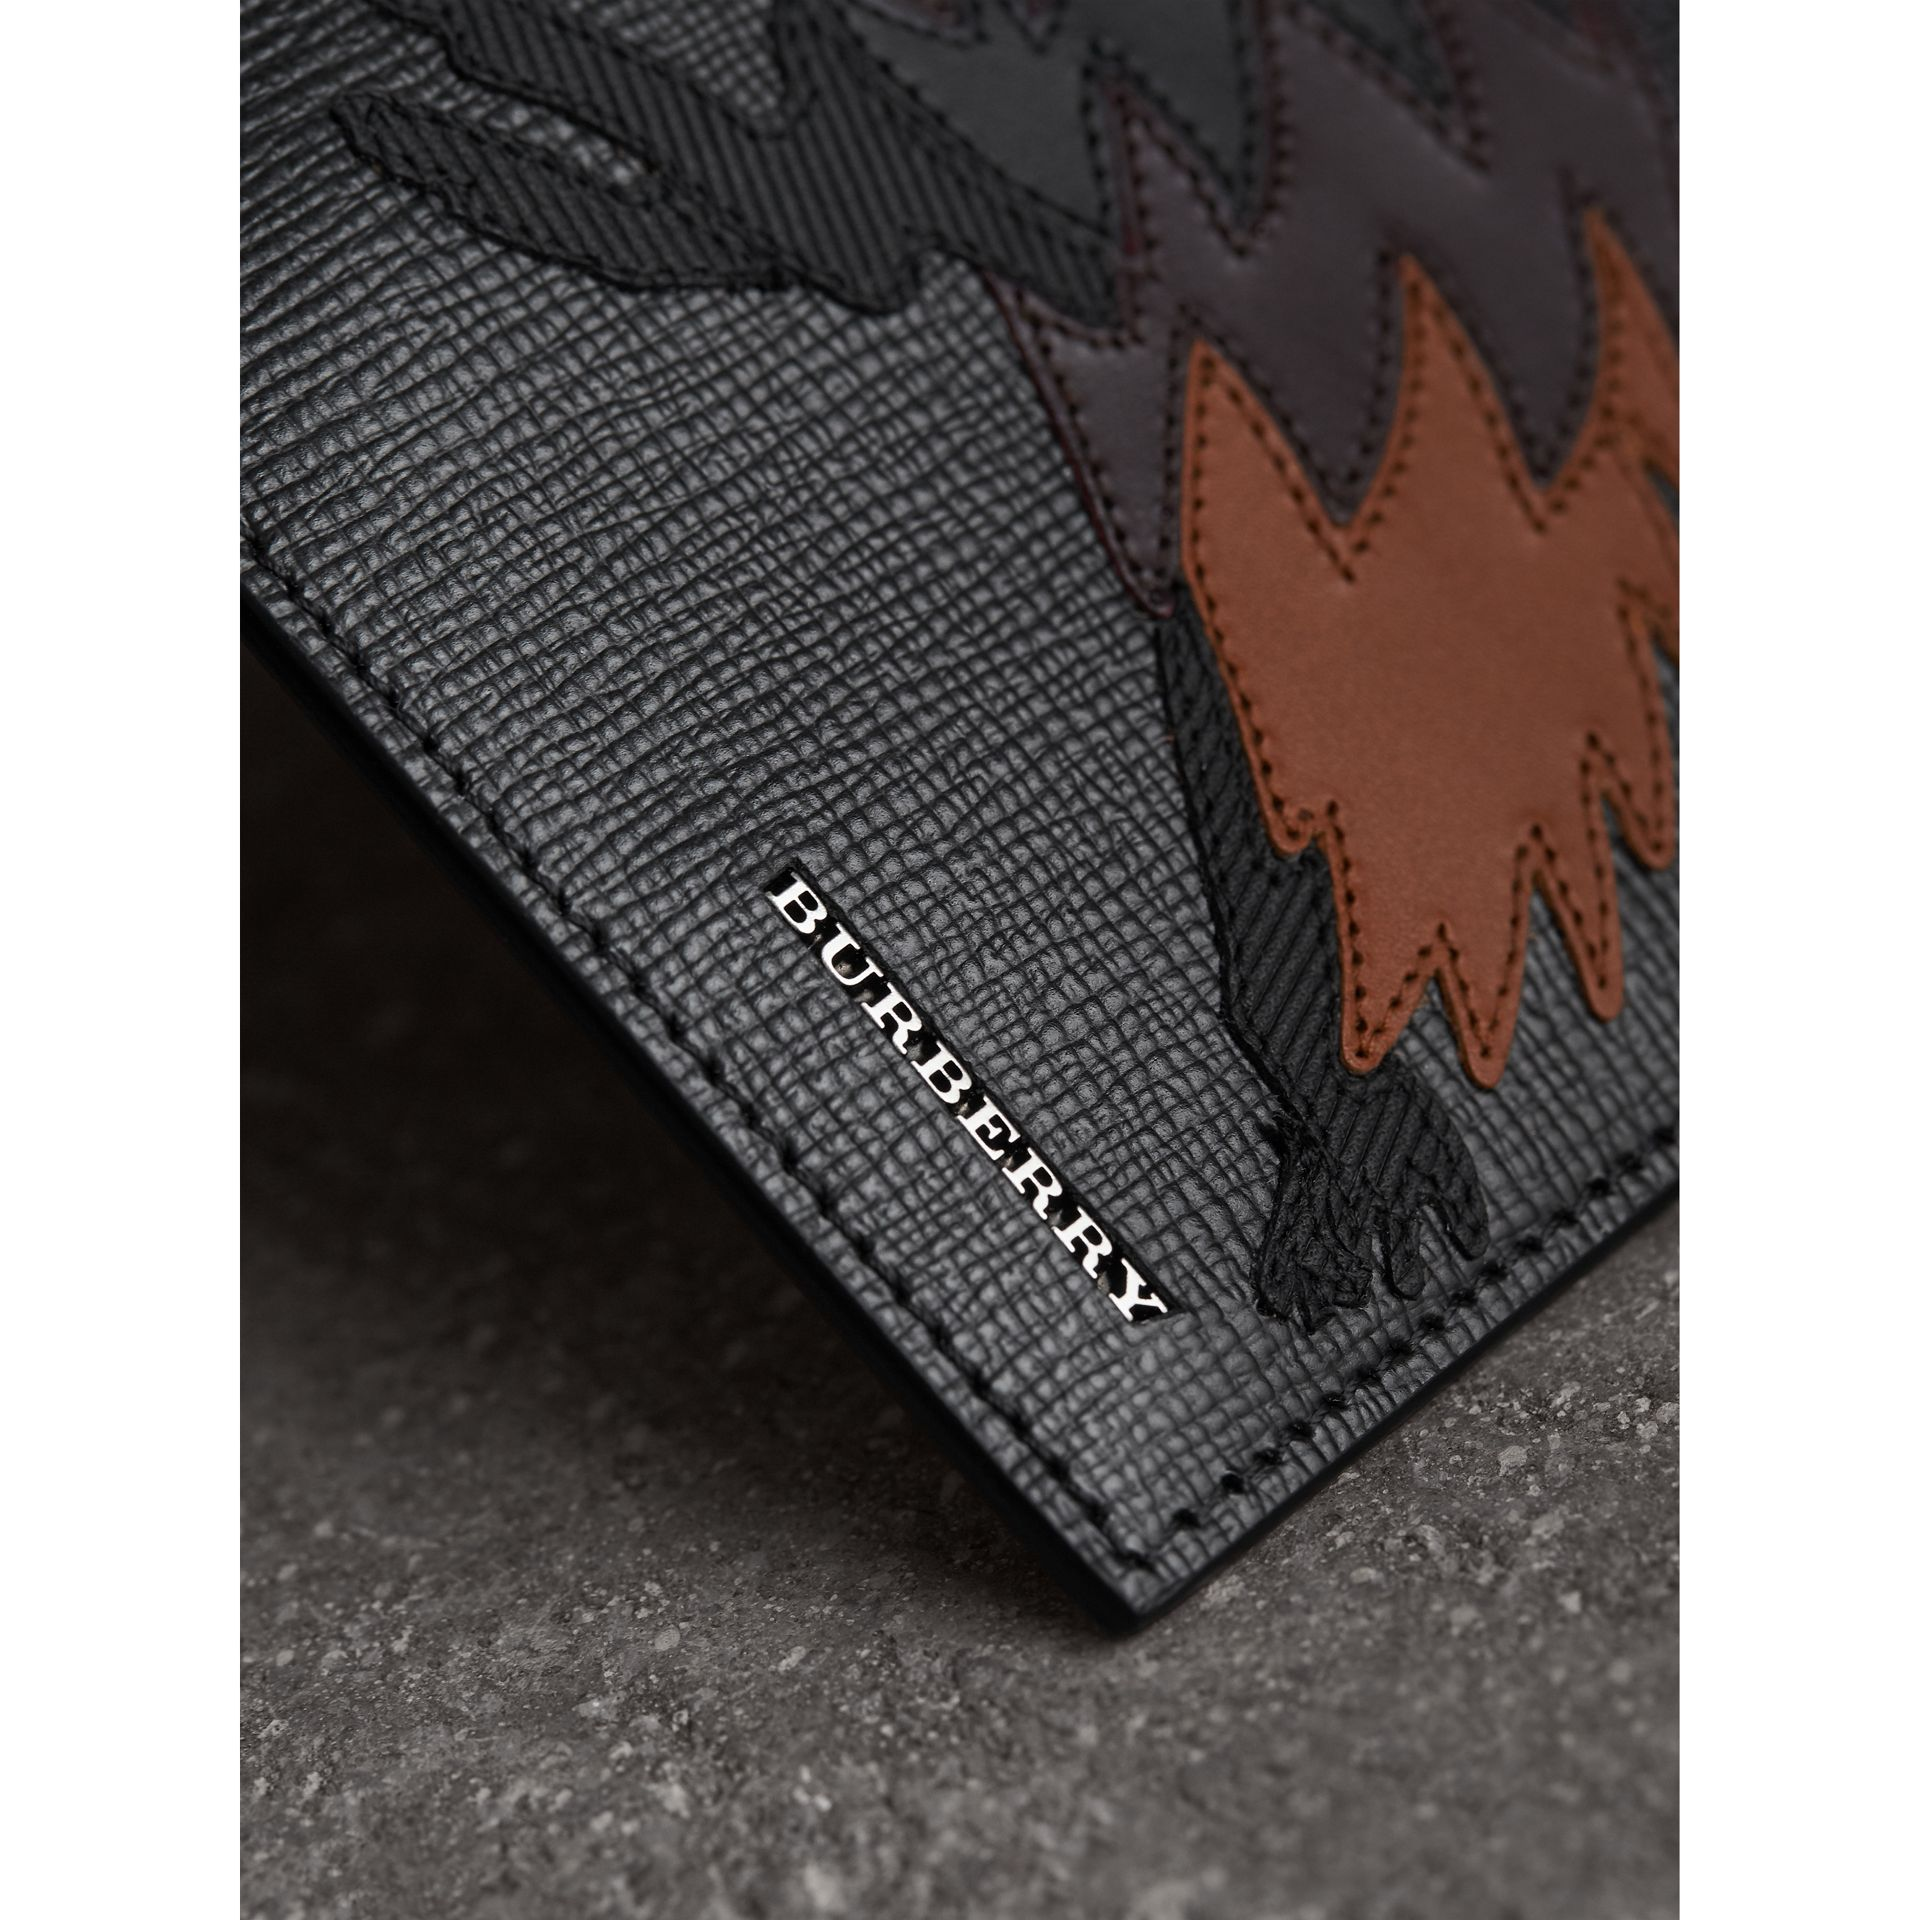 Beasts Motif Leather International Bifold Wallet in Black - Men | Burberry Australia - gallery image 2